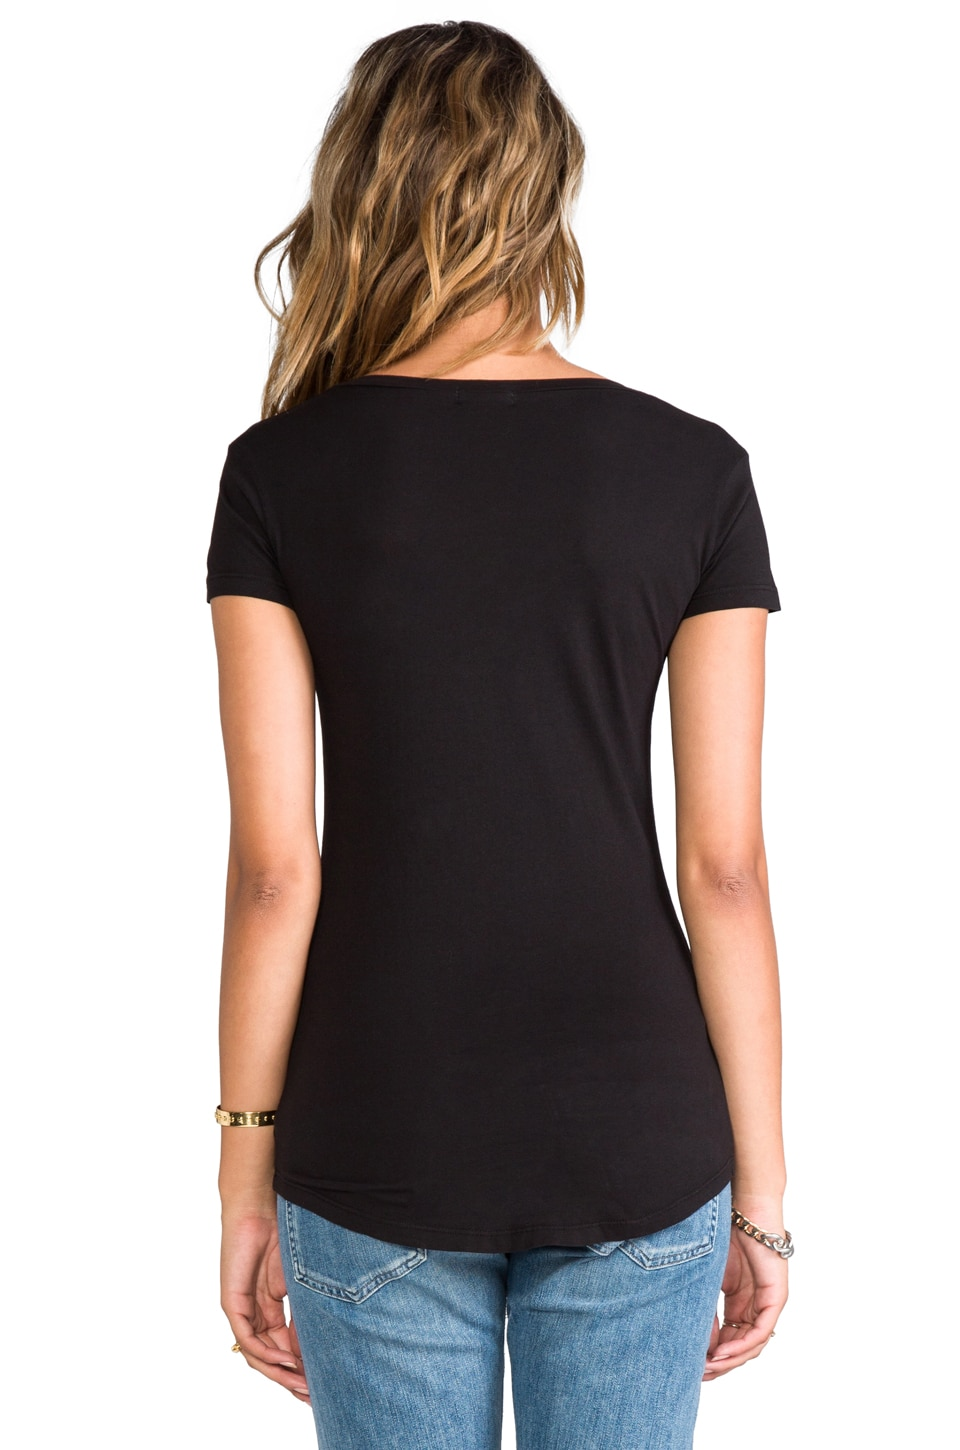 LA Made V Pocket Tee in Black